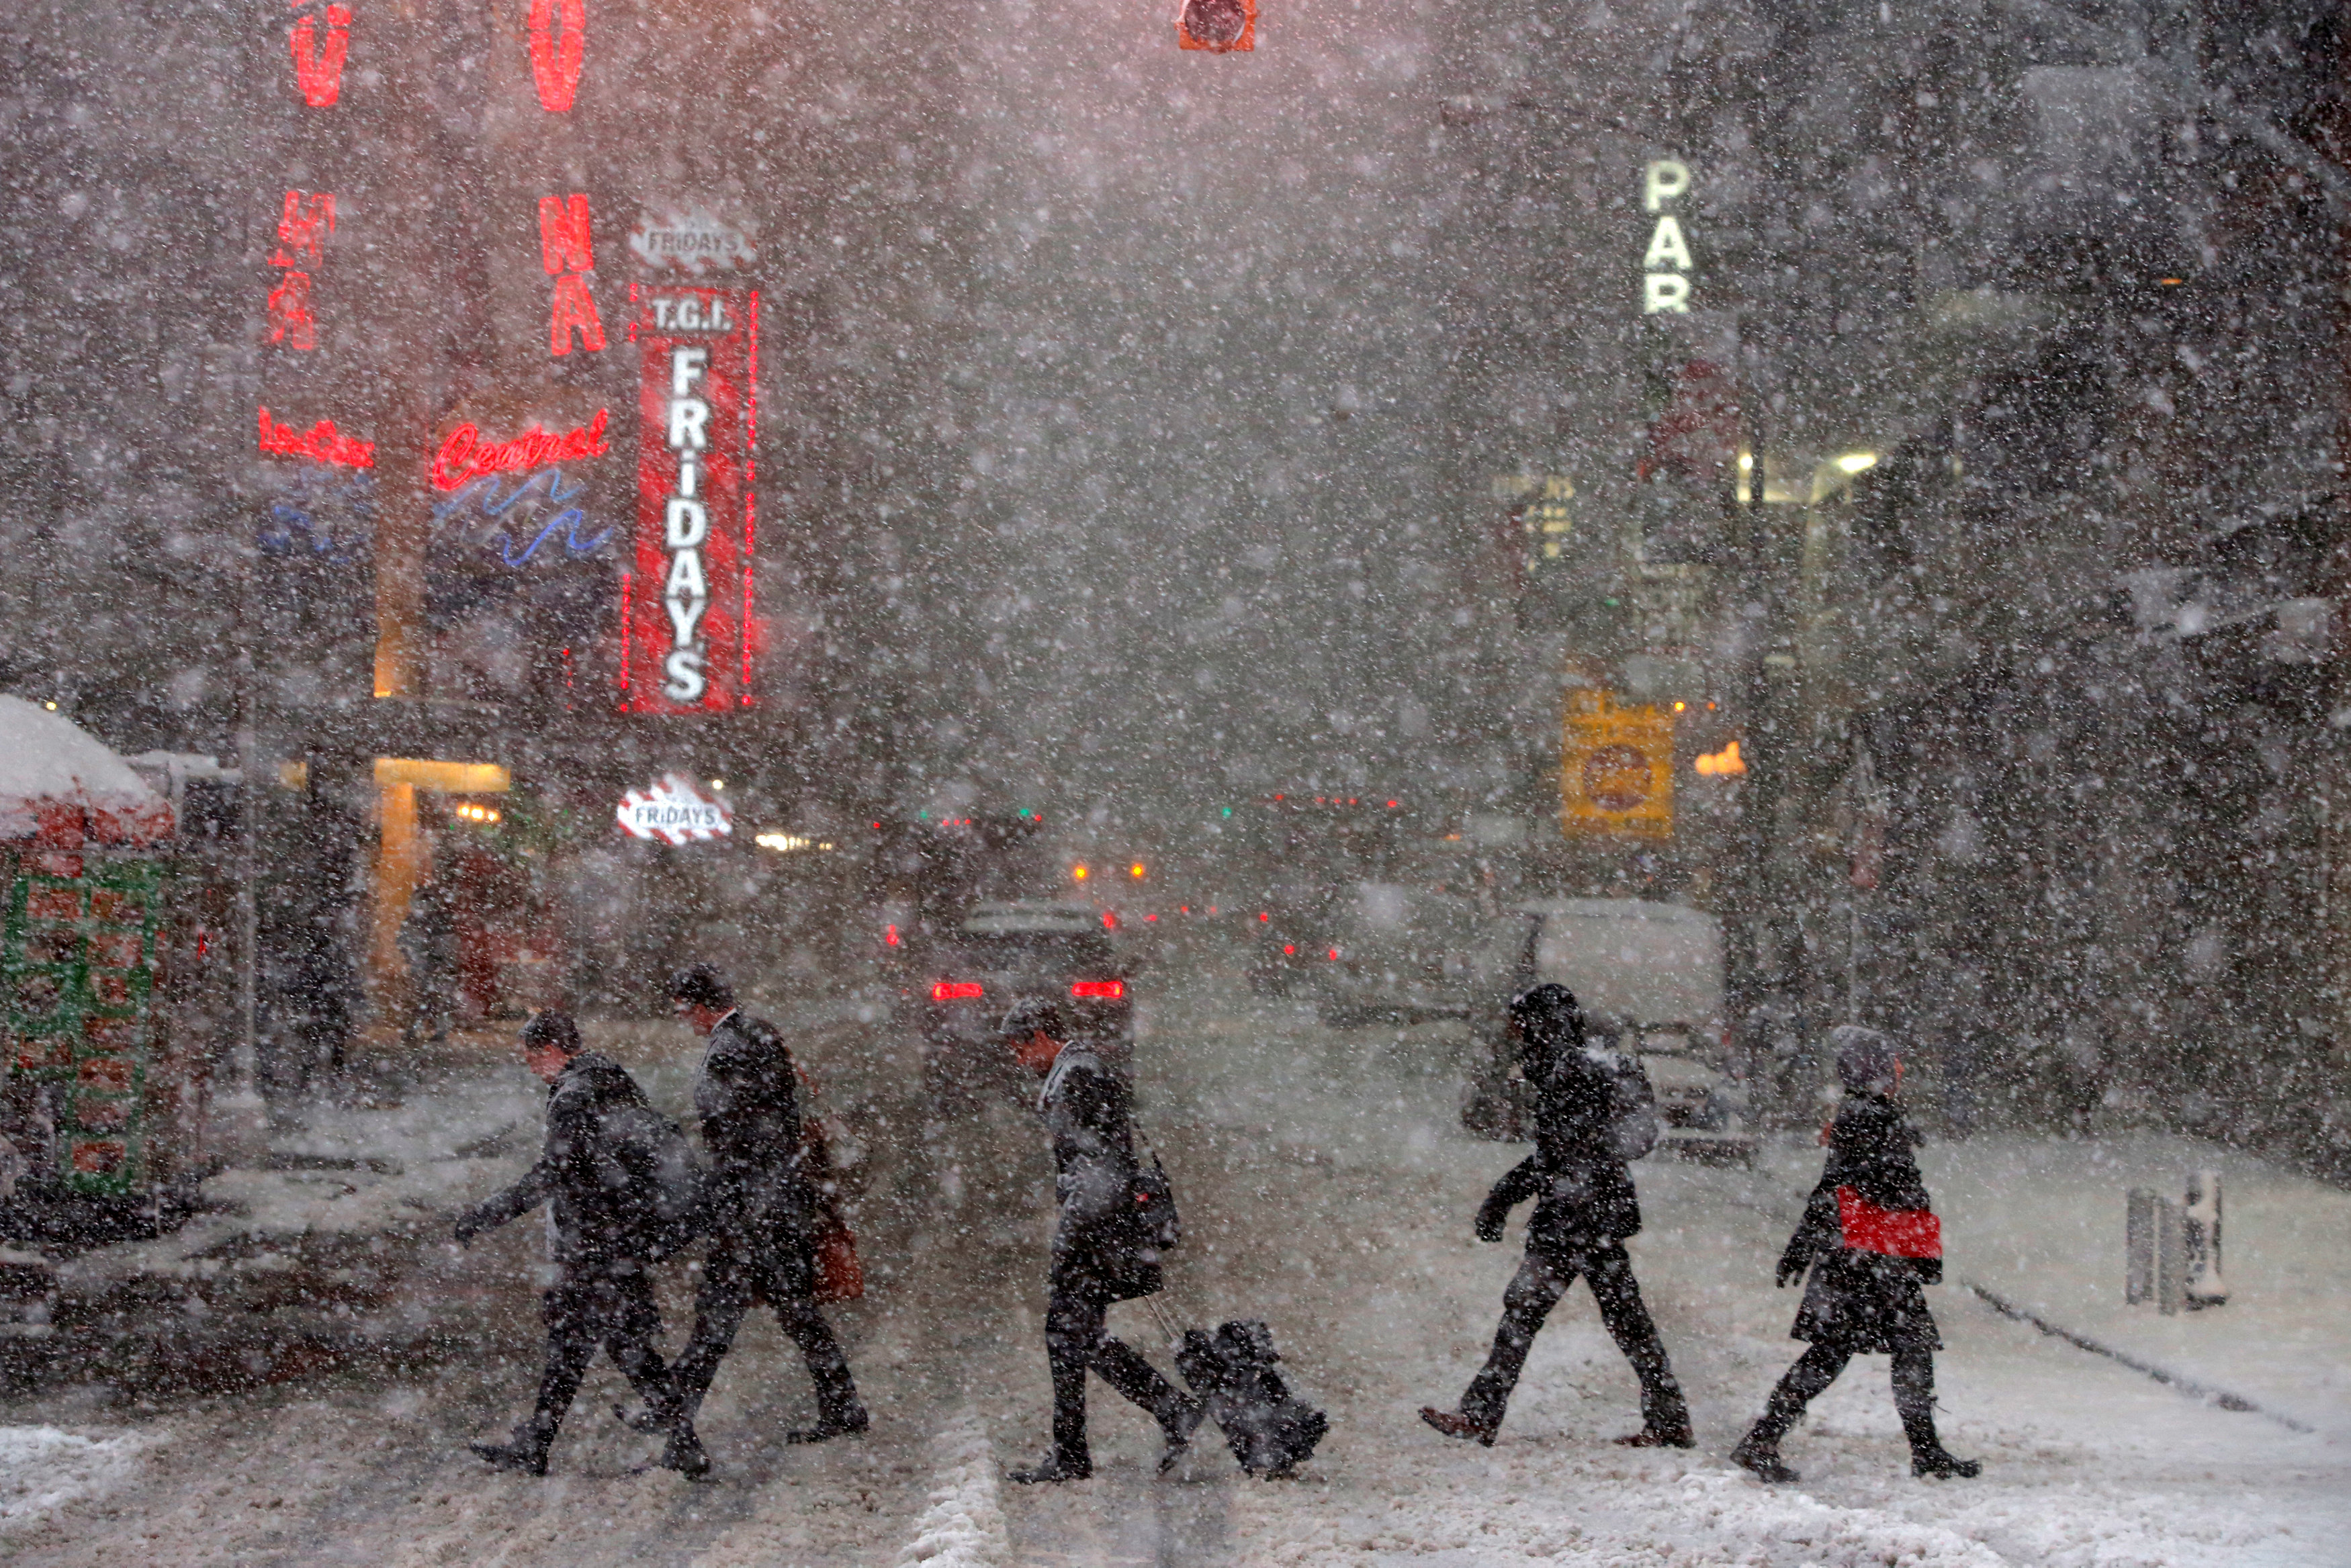 Pedestrians walk in Times Square as heavy snow falls